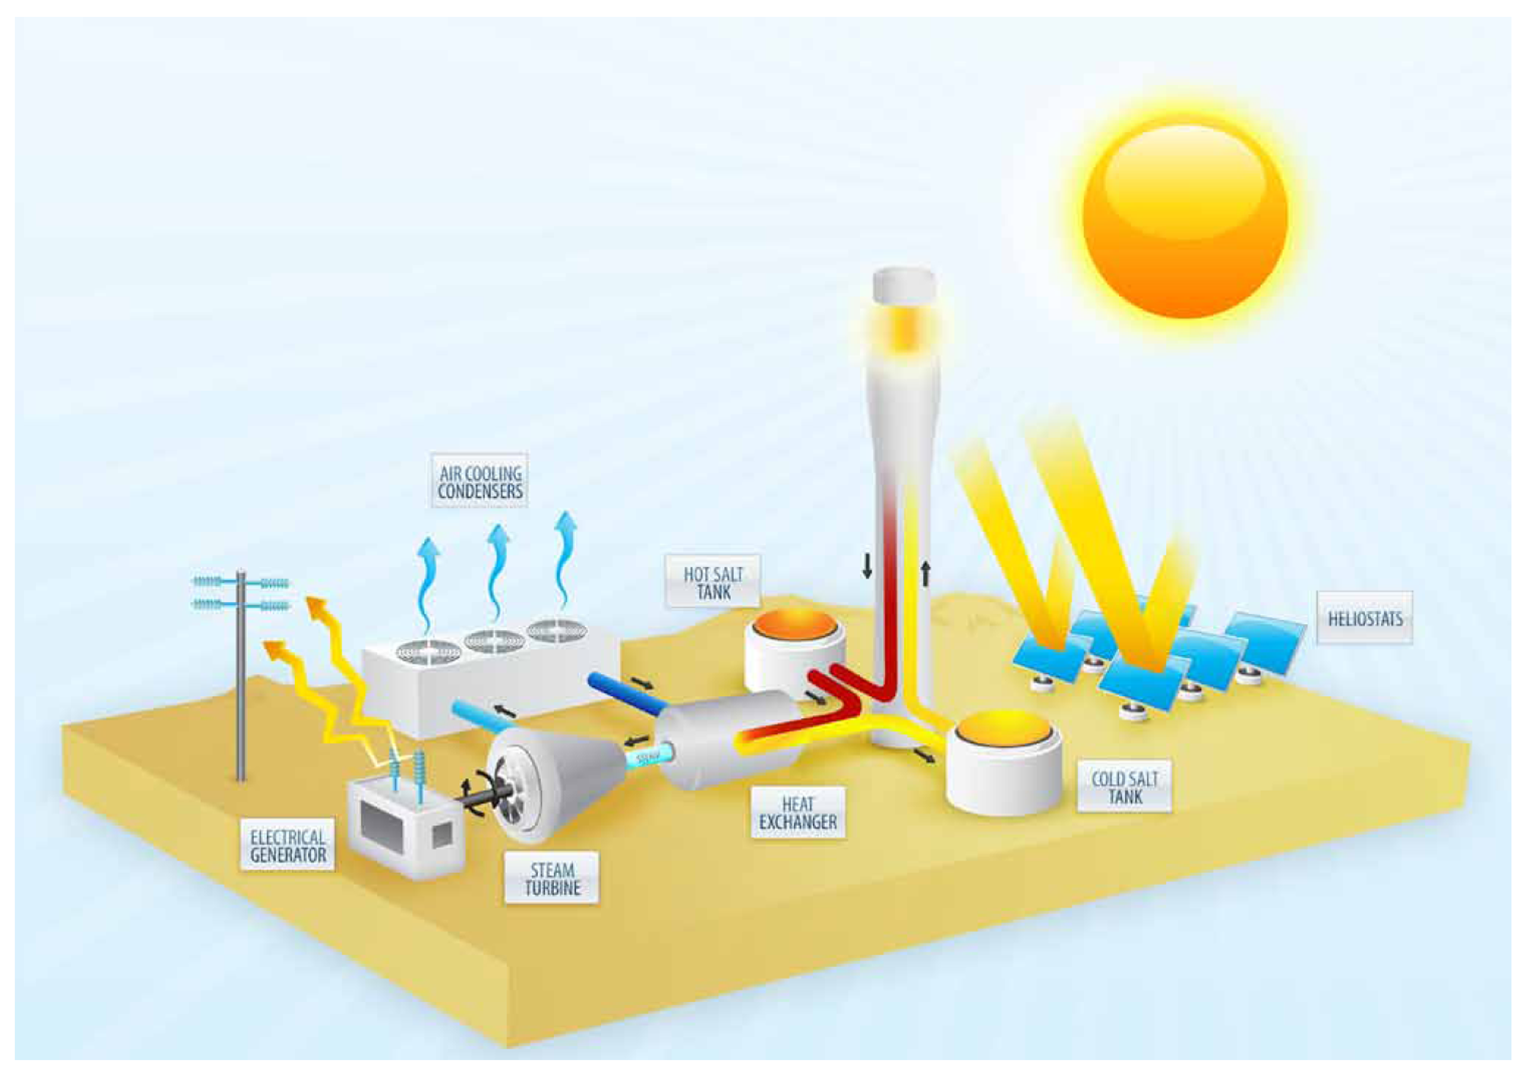 medium resolution of solar thermal power plants diagram for more great solar and wind power projects and information go to www windmillsforelectricity com